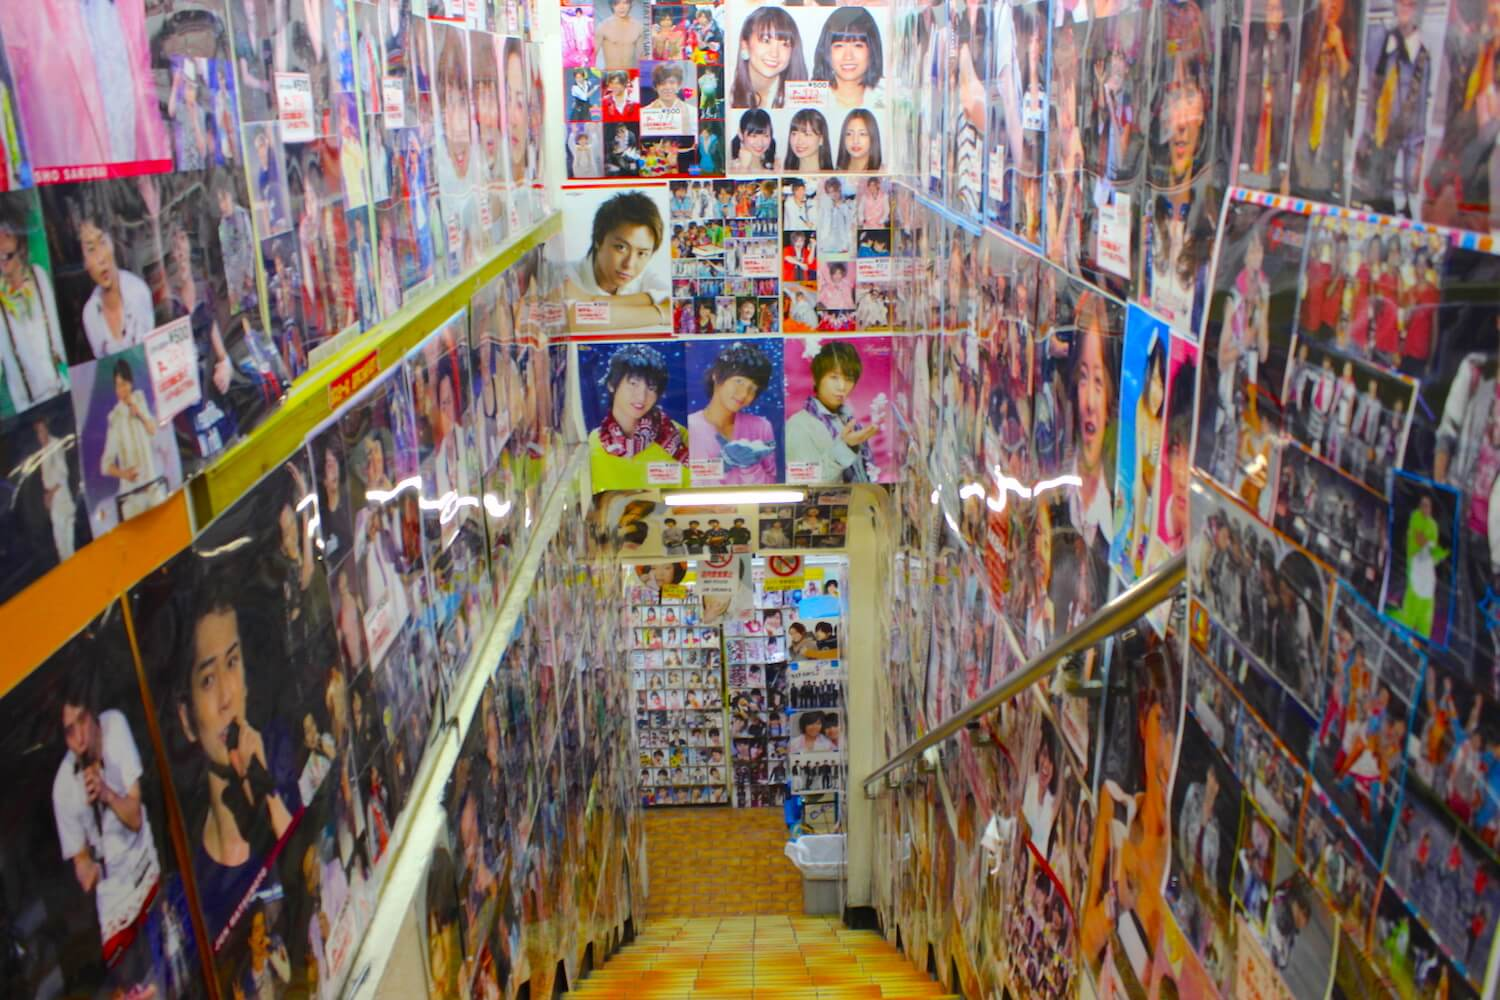 harajuku host shop with many posters